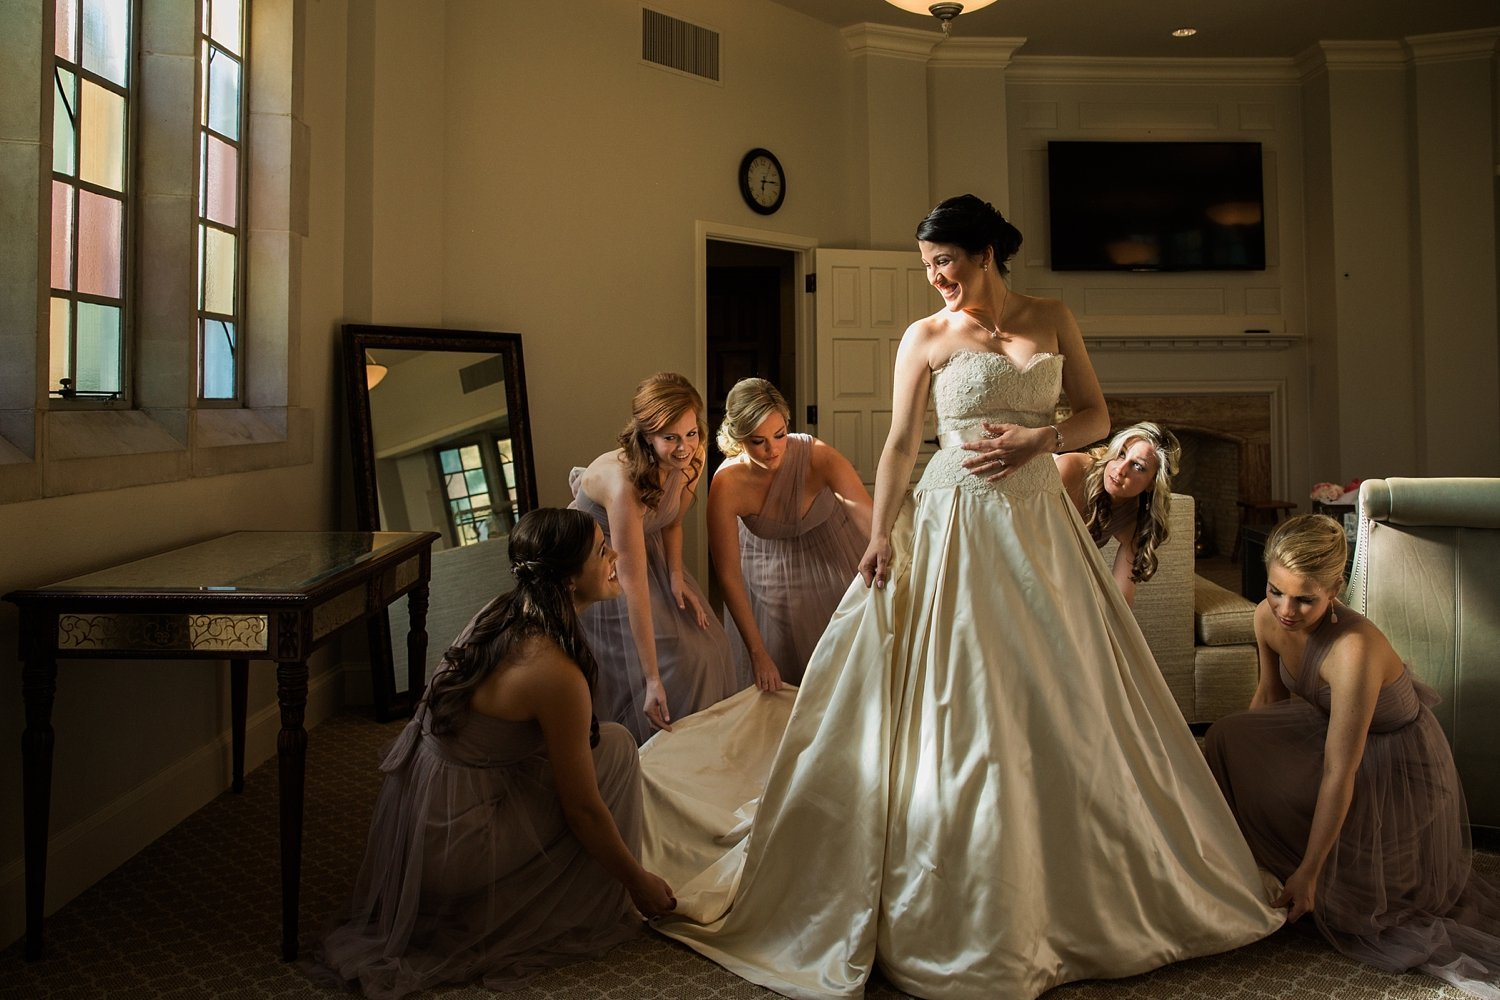 dallas-wedding-dcc-highland-park-hpumc-amanda-jm-10